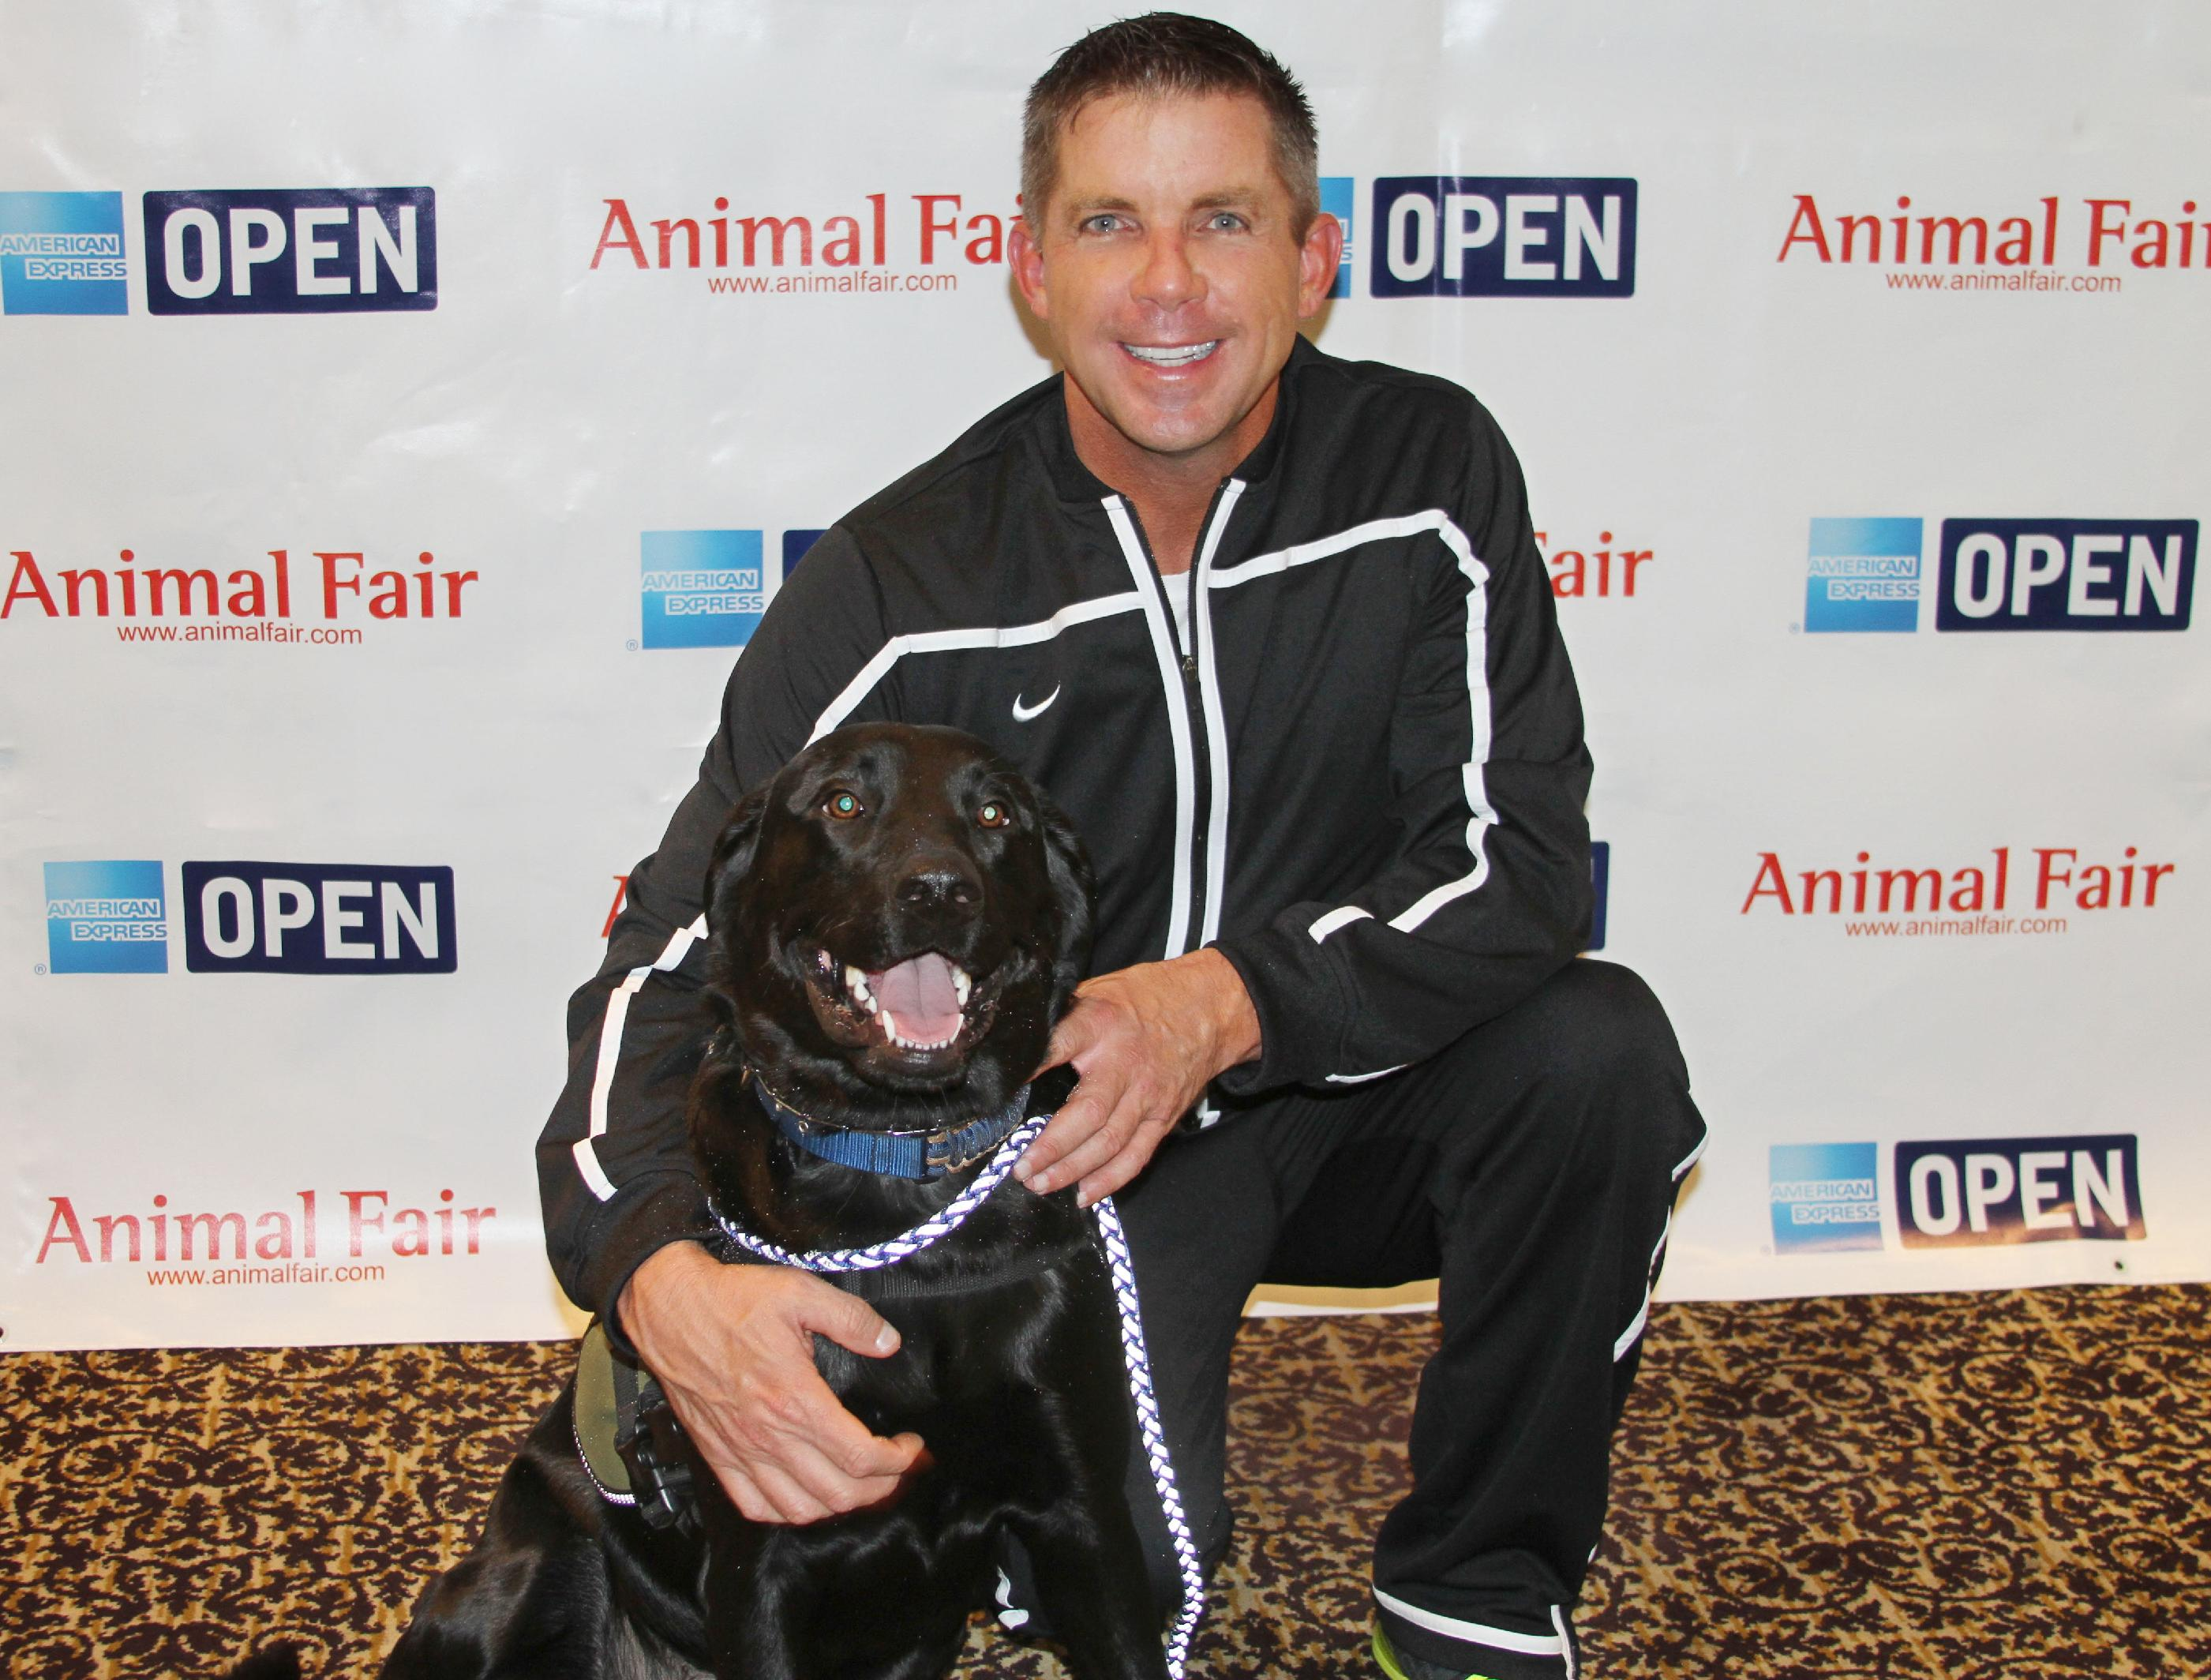 In this photo provided by Animal Fair Media, Inc., New Orleans Saints Coach Sean Payton poses with Service Dog Seal at the